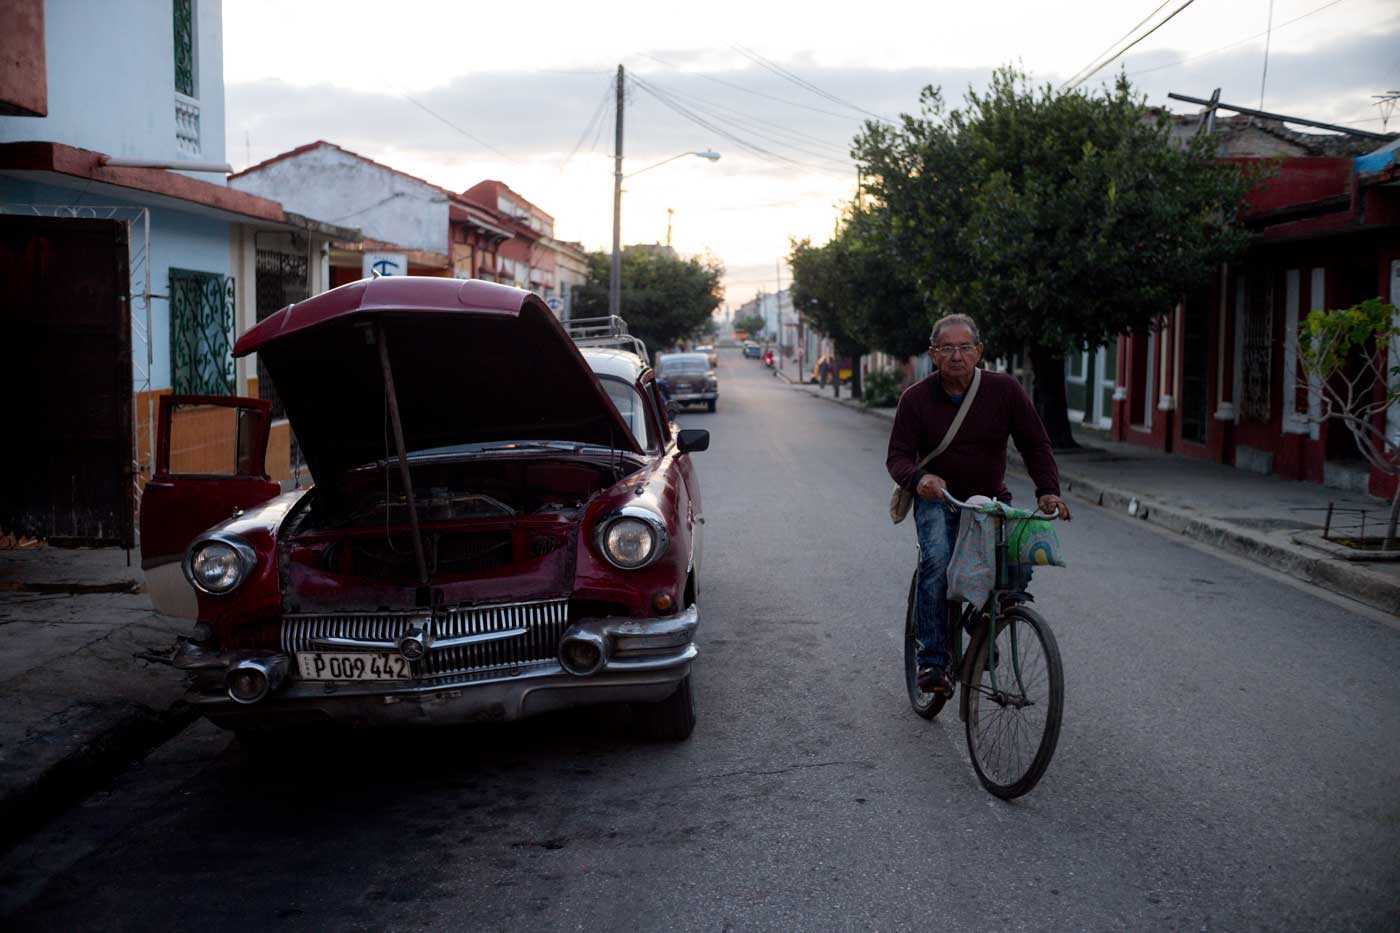 travel-cuba-cienfuegos-leica-m10-rangefinder-35mm-f2-summicron-iv-pre-a-trip-local-cycling